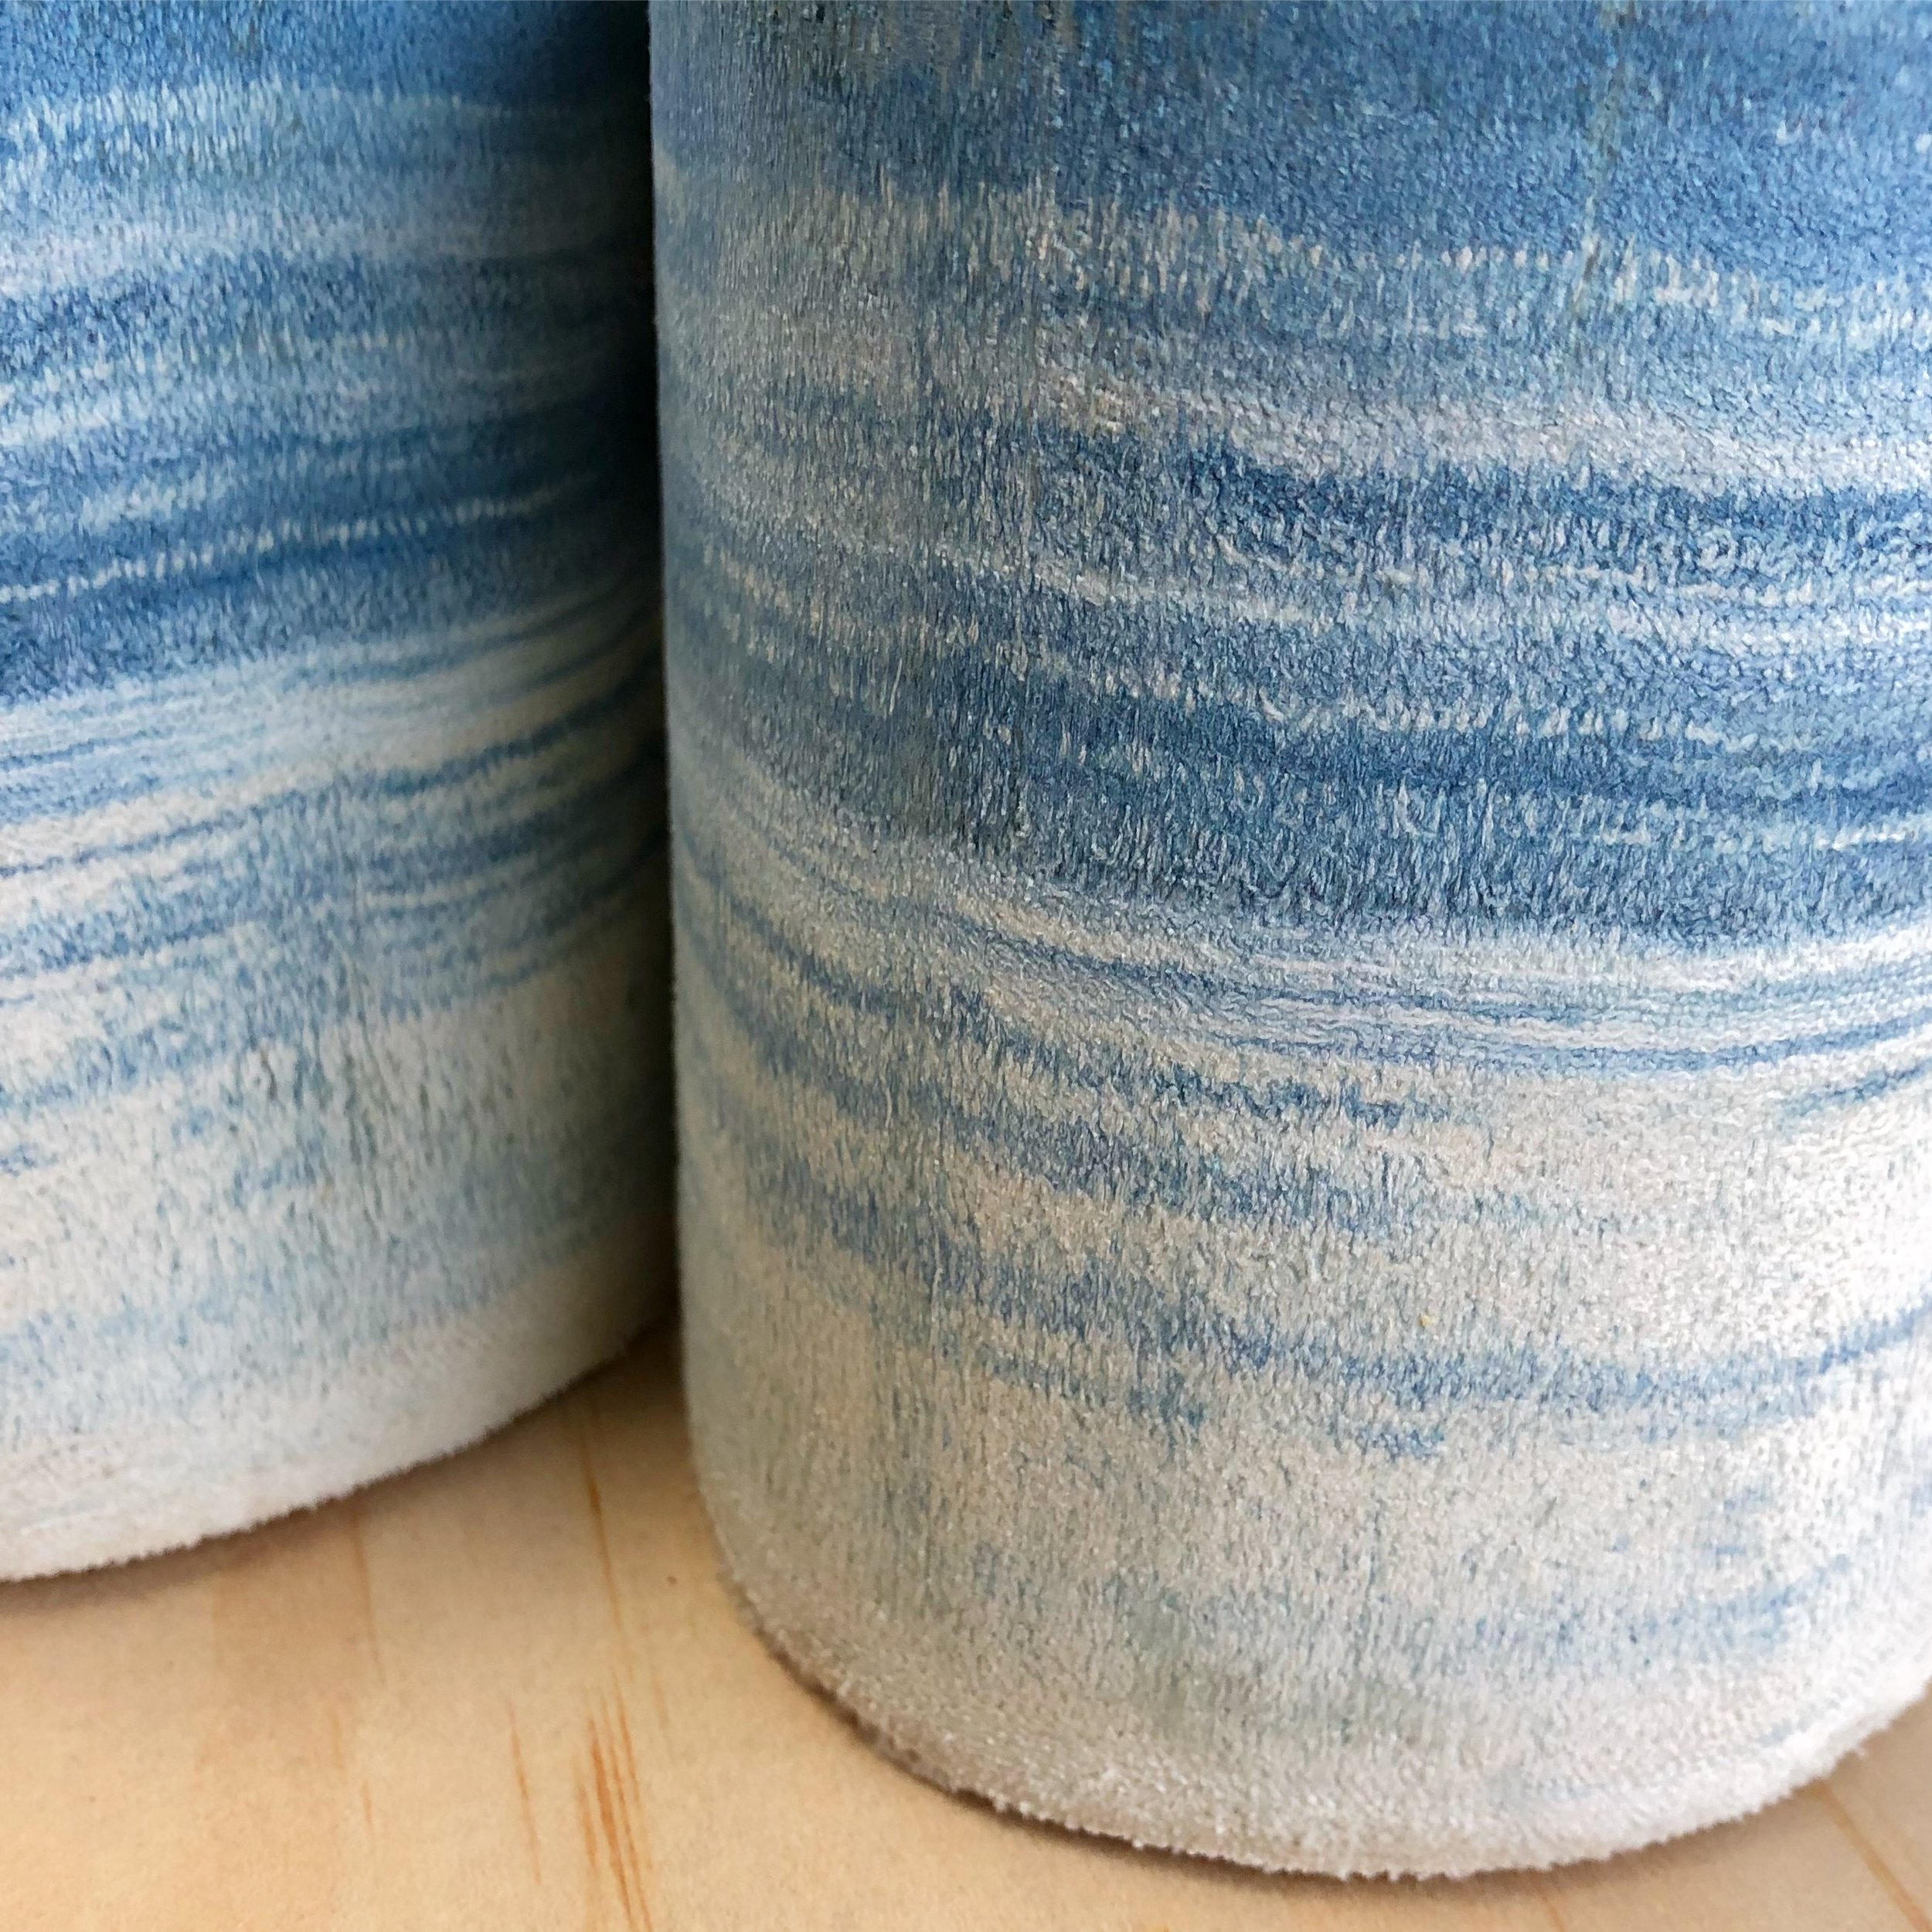 These are indigo dyed scraps of fabric that I have layered and cut. Stratigraphy is the analysis of the order and position of layers of archaeological remains and the structure of a particular set of strata.